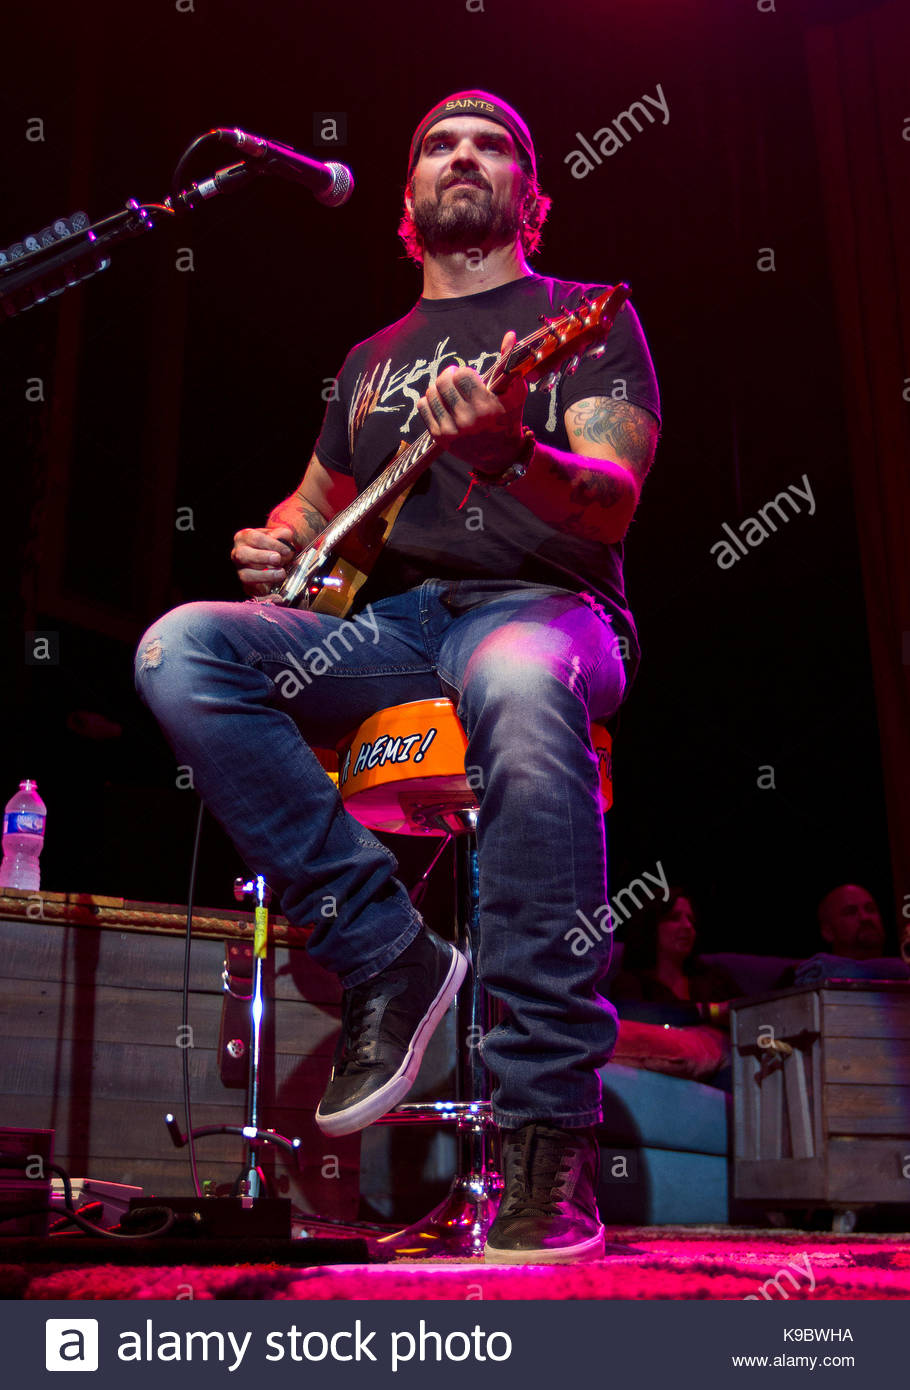 Hit rockers 3 Doors Down performed at The Tabernacle on Wednesday September 10 2014 in Atlanta GA. The performance was live-streamed on Yahoo! Music  sc 1 st  Alamy & Chris Henderson. Hit rockers 3 Doors Down performed at The Stock ...